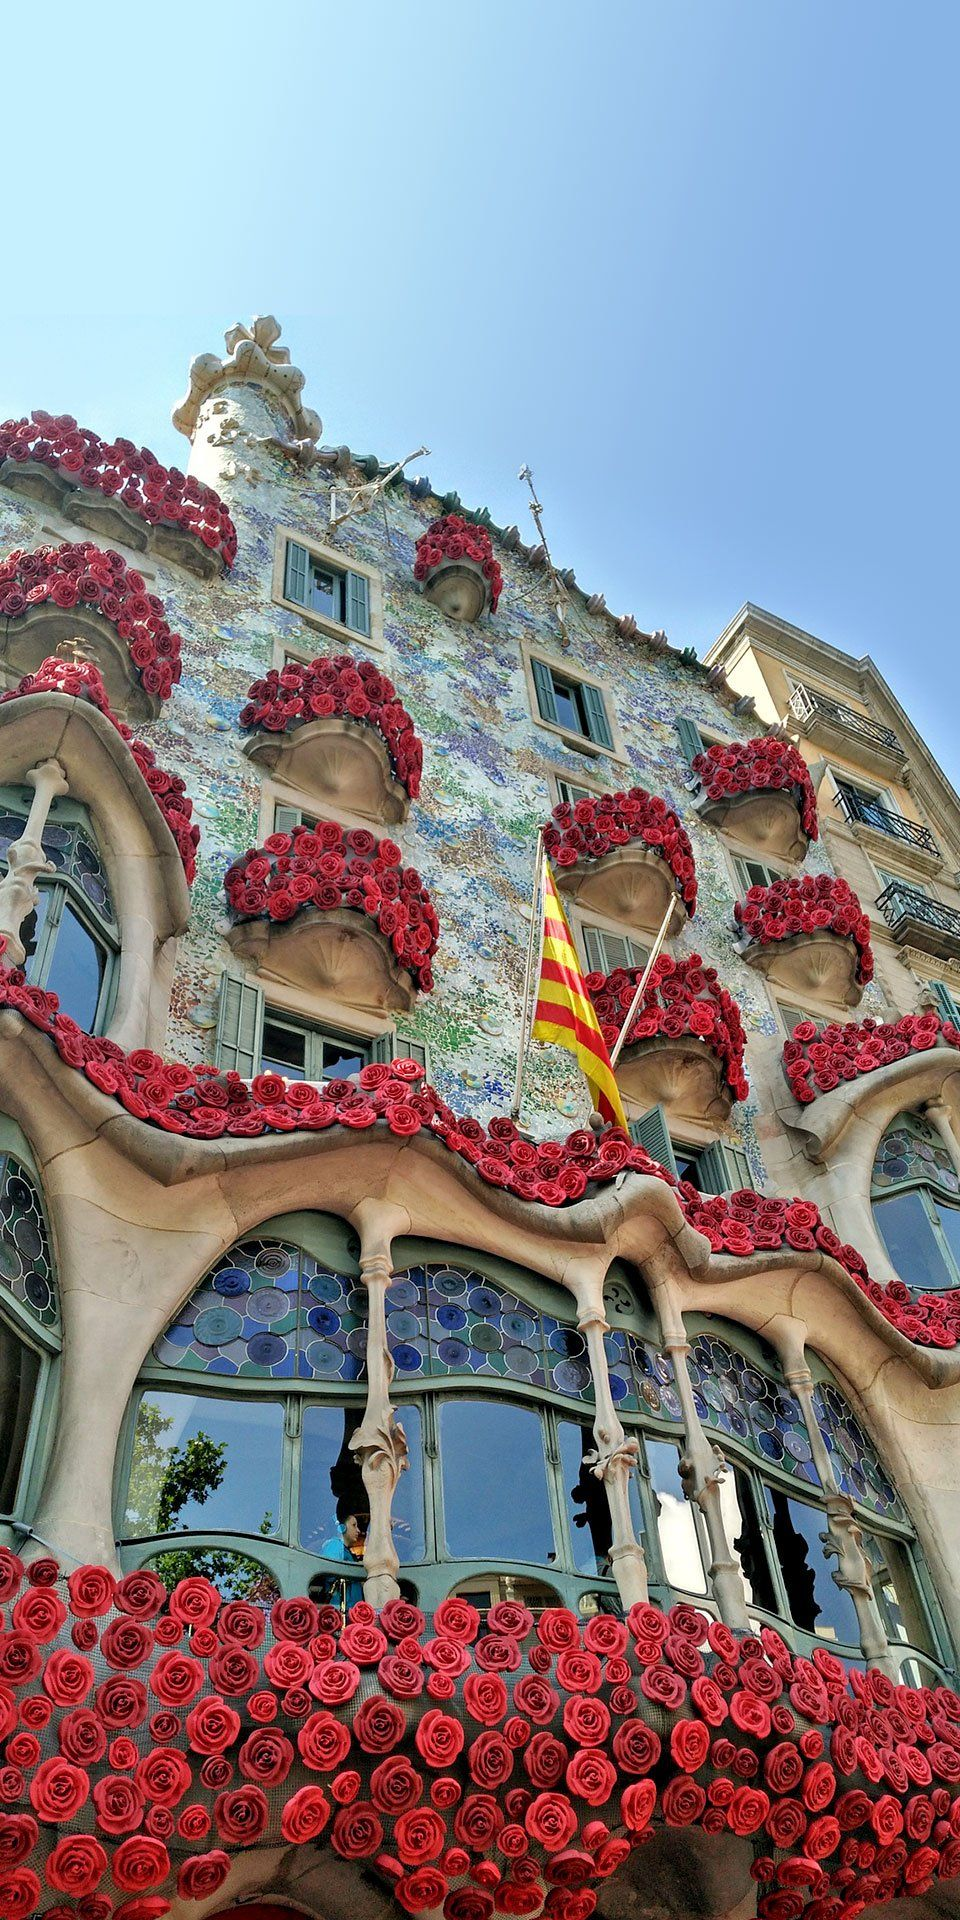 Barcelona Spain Cruise To Barcelona And Explore Casa Batlló A Masterpiece Designed By Barcelona Spain Travel Barcelona Spain Photography Spain Photography